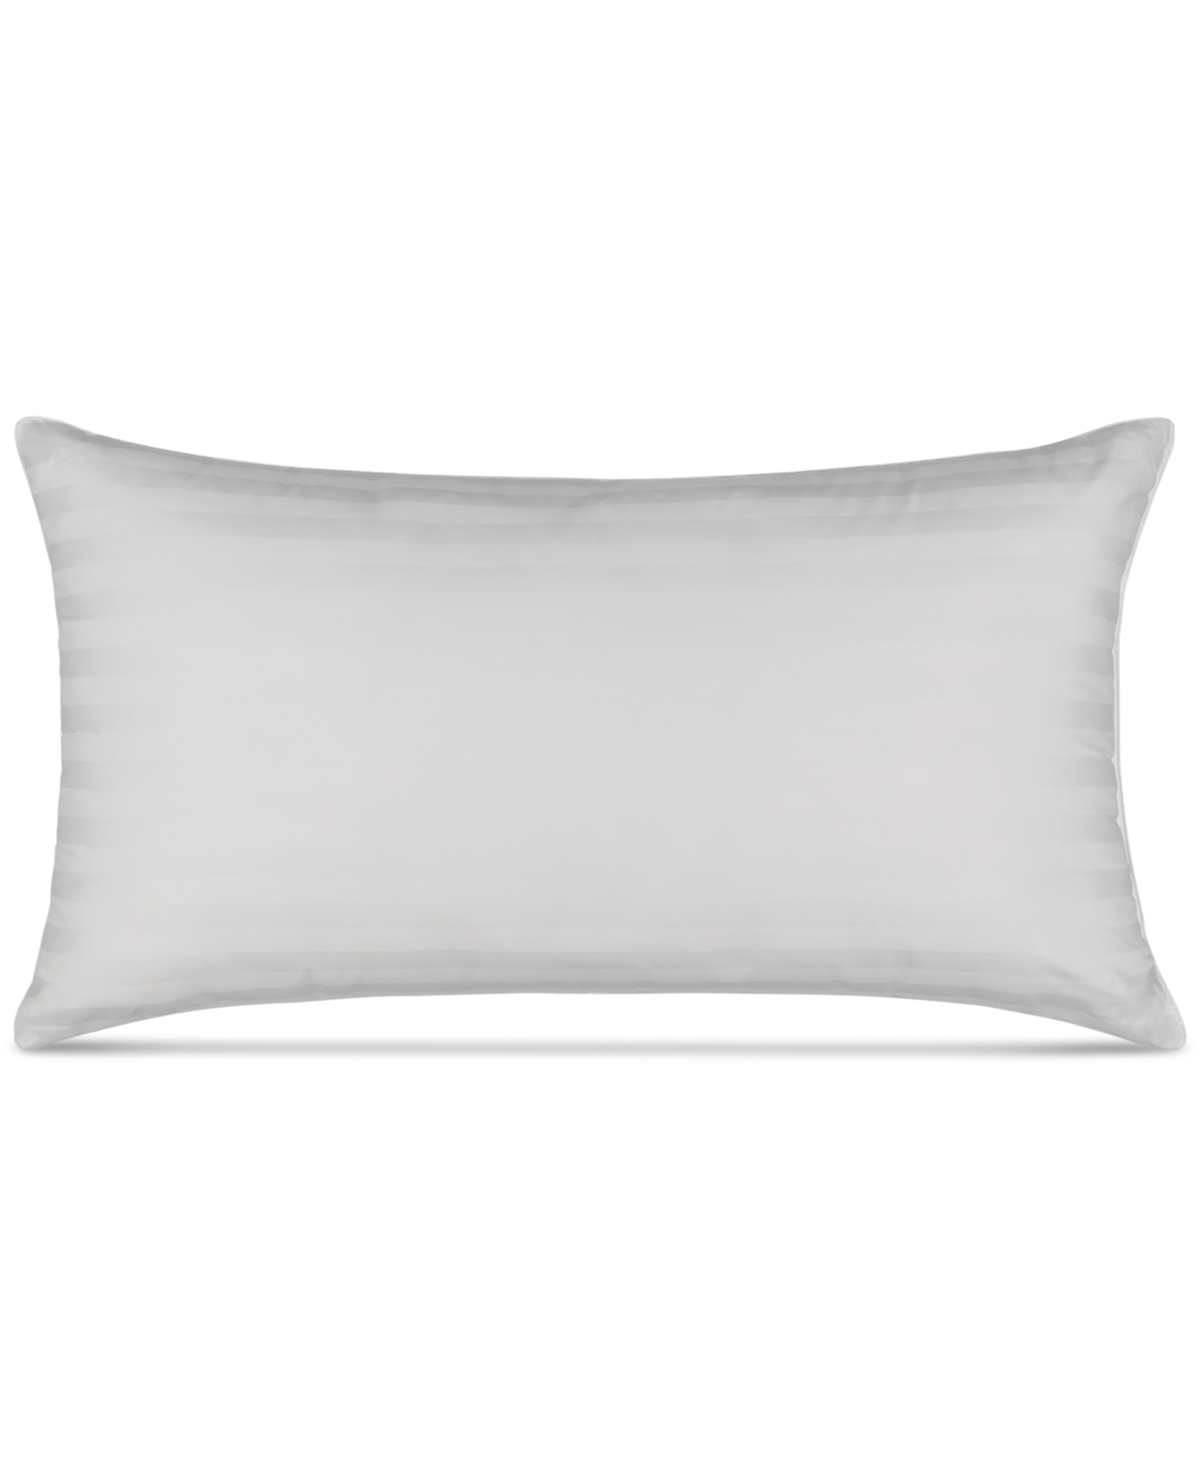 Martha Stewart Collection Allergy Wise Dobby Stripe Medium/Firm King Pillow, Created for Macy's Bedding